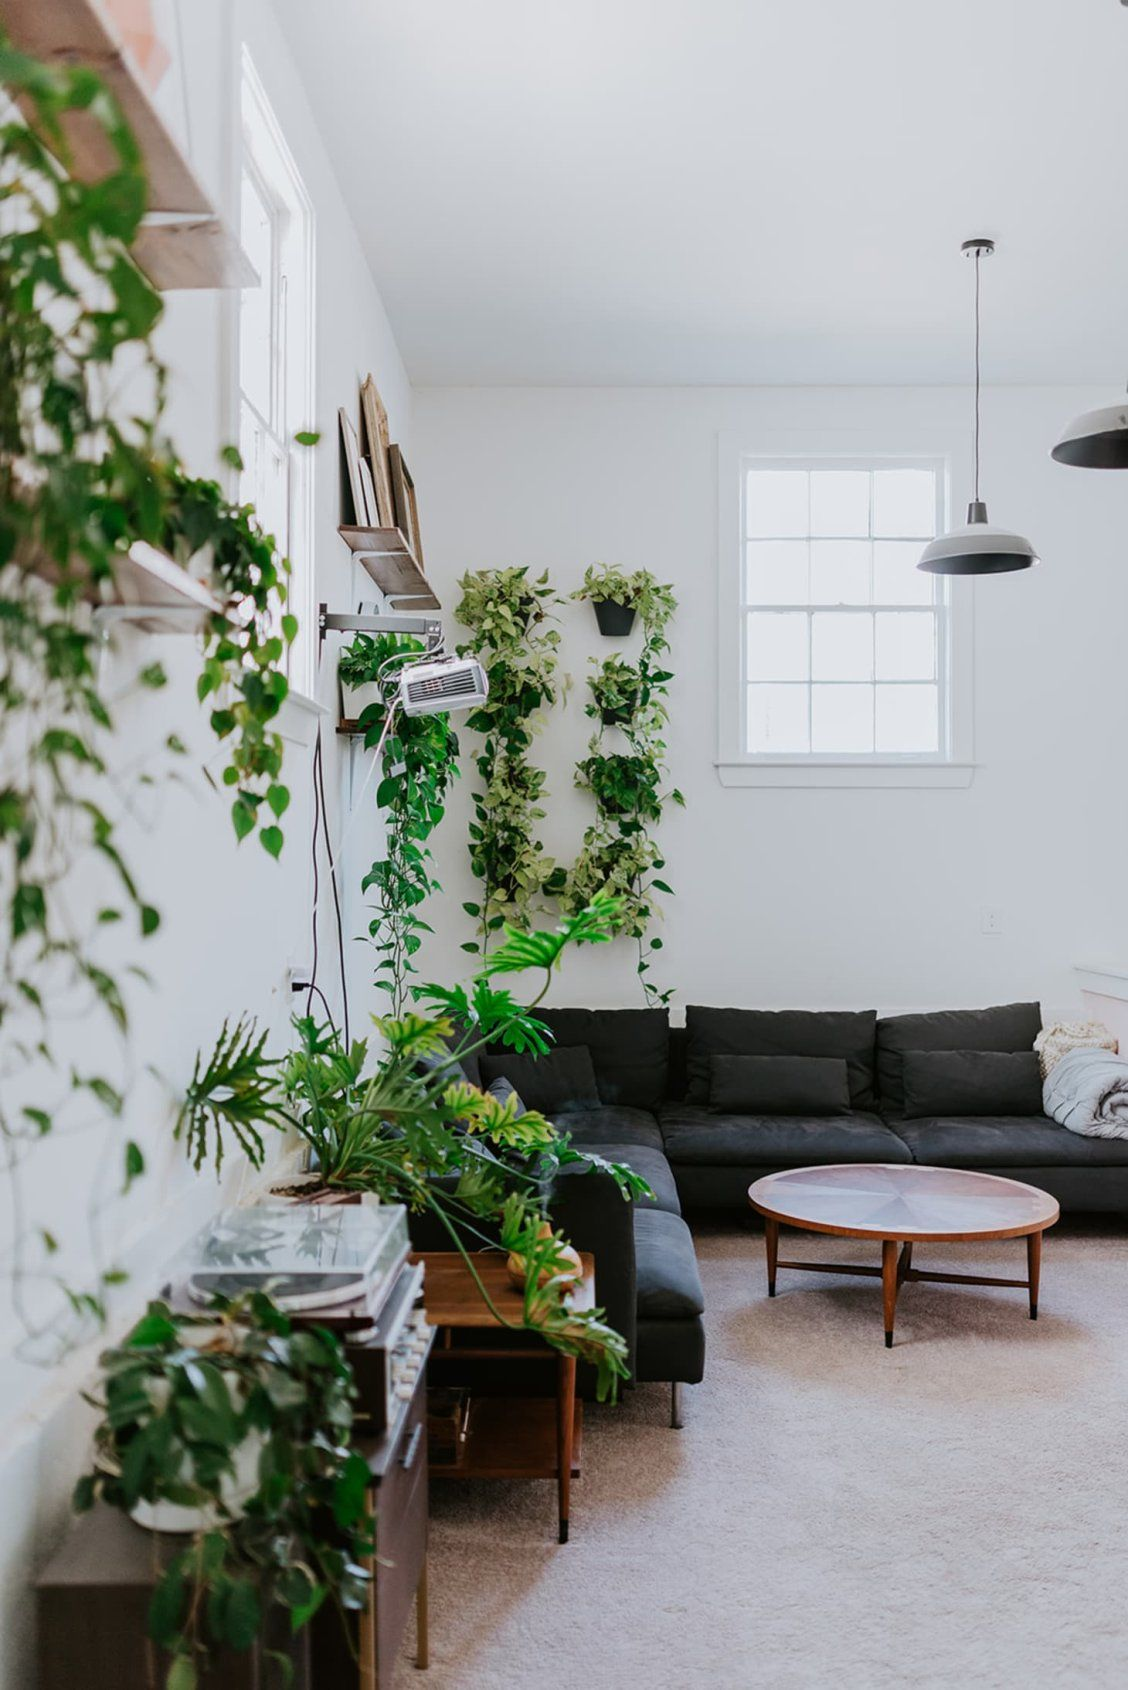 This Minimal Renovated Boho Home Has Plant And Art Displaying Ideas In Every Room In 2020 Best Tiny House Home Decor Wall Art Interior Design Inspiration